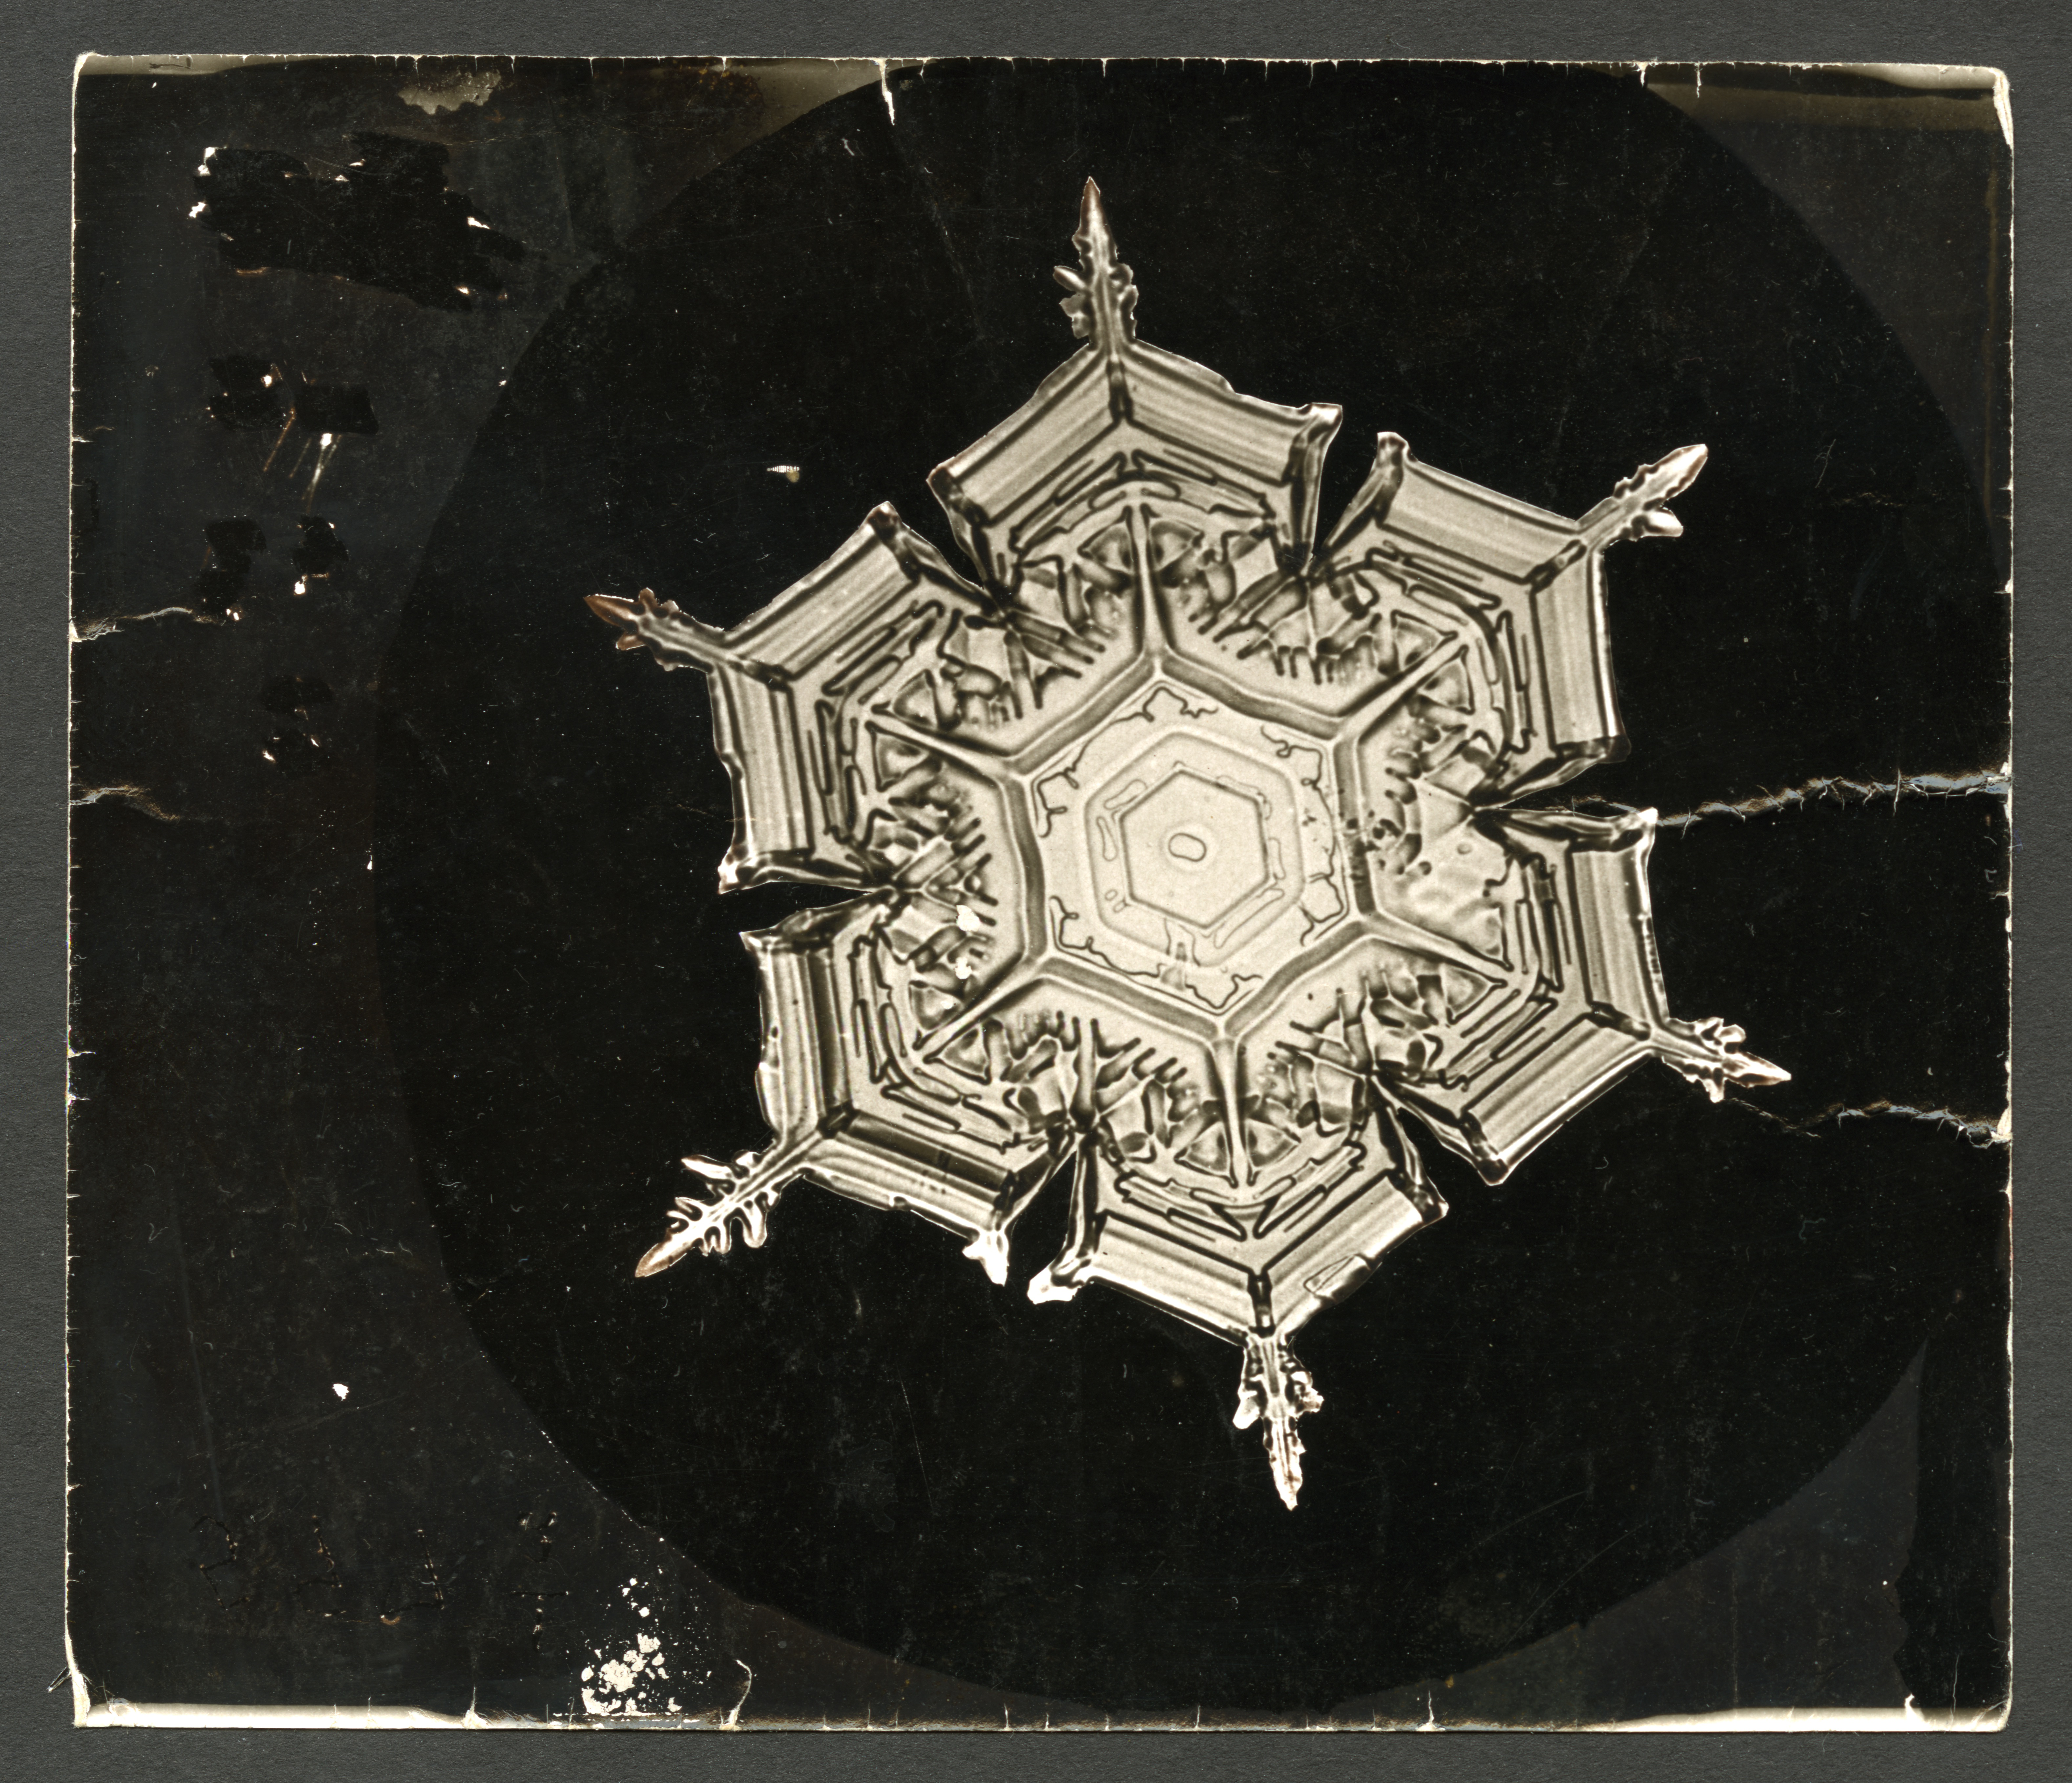 Original photograph of a thicker snowflake with six small points.